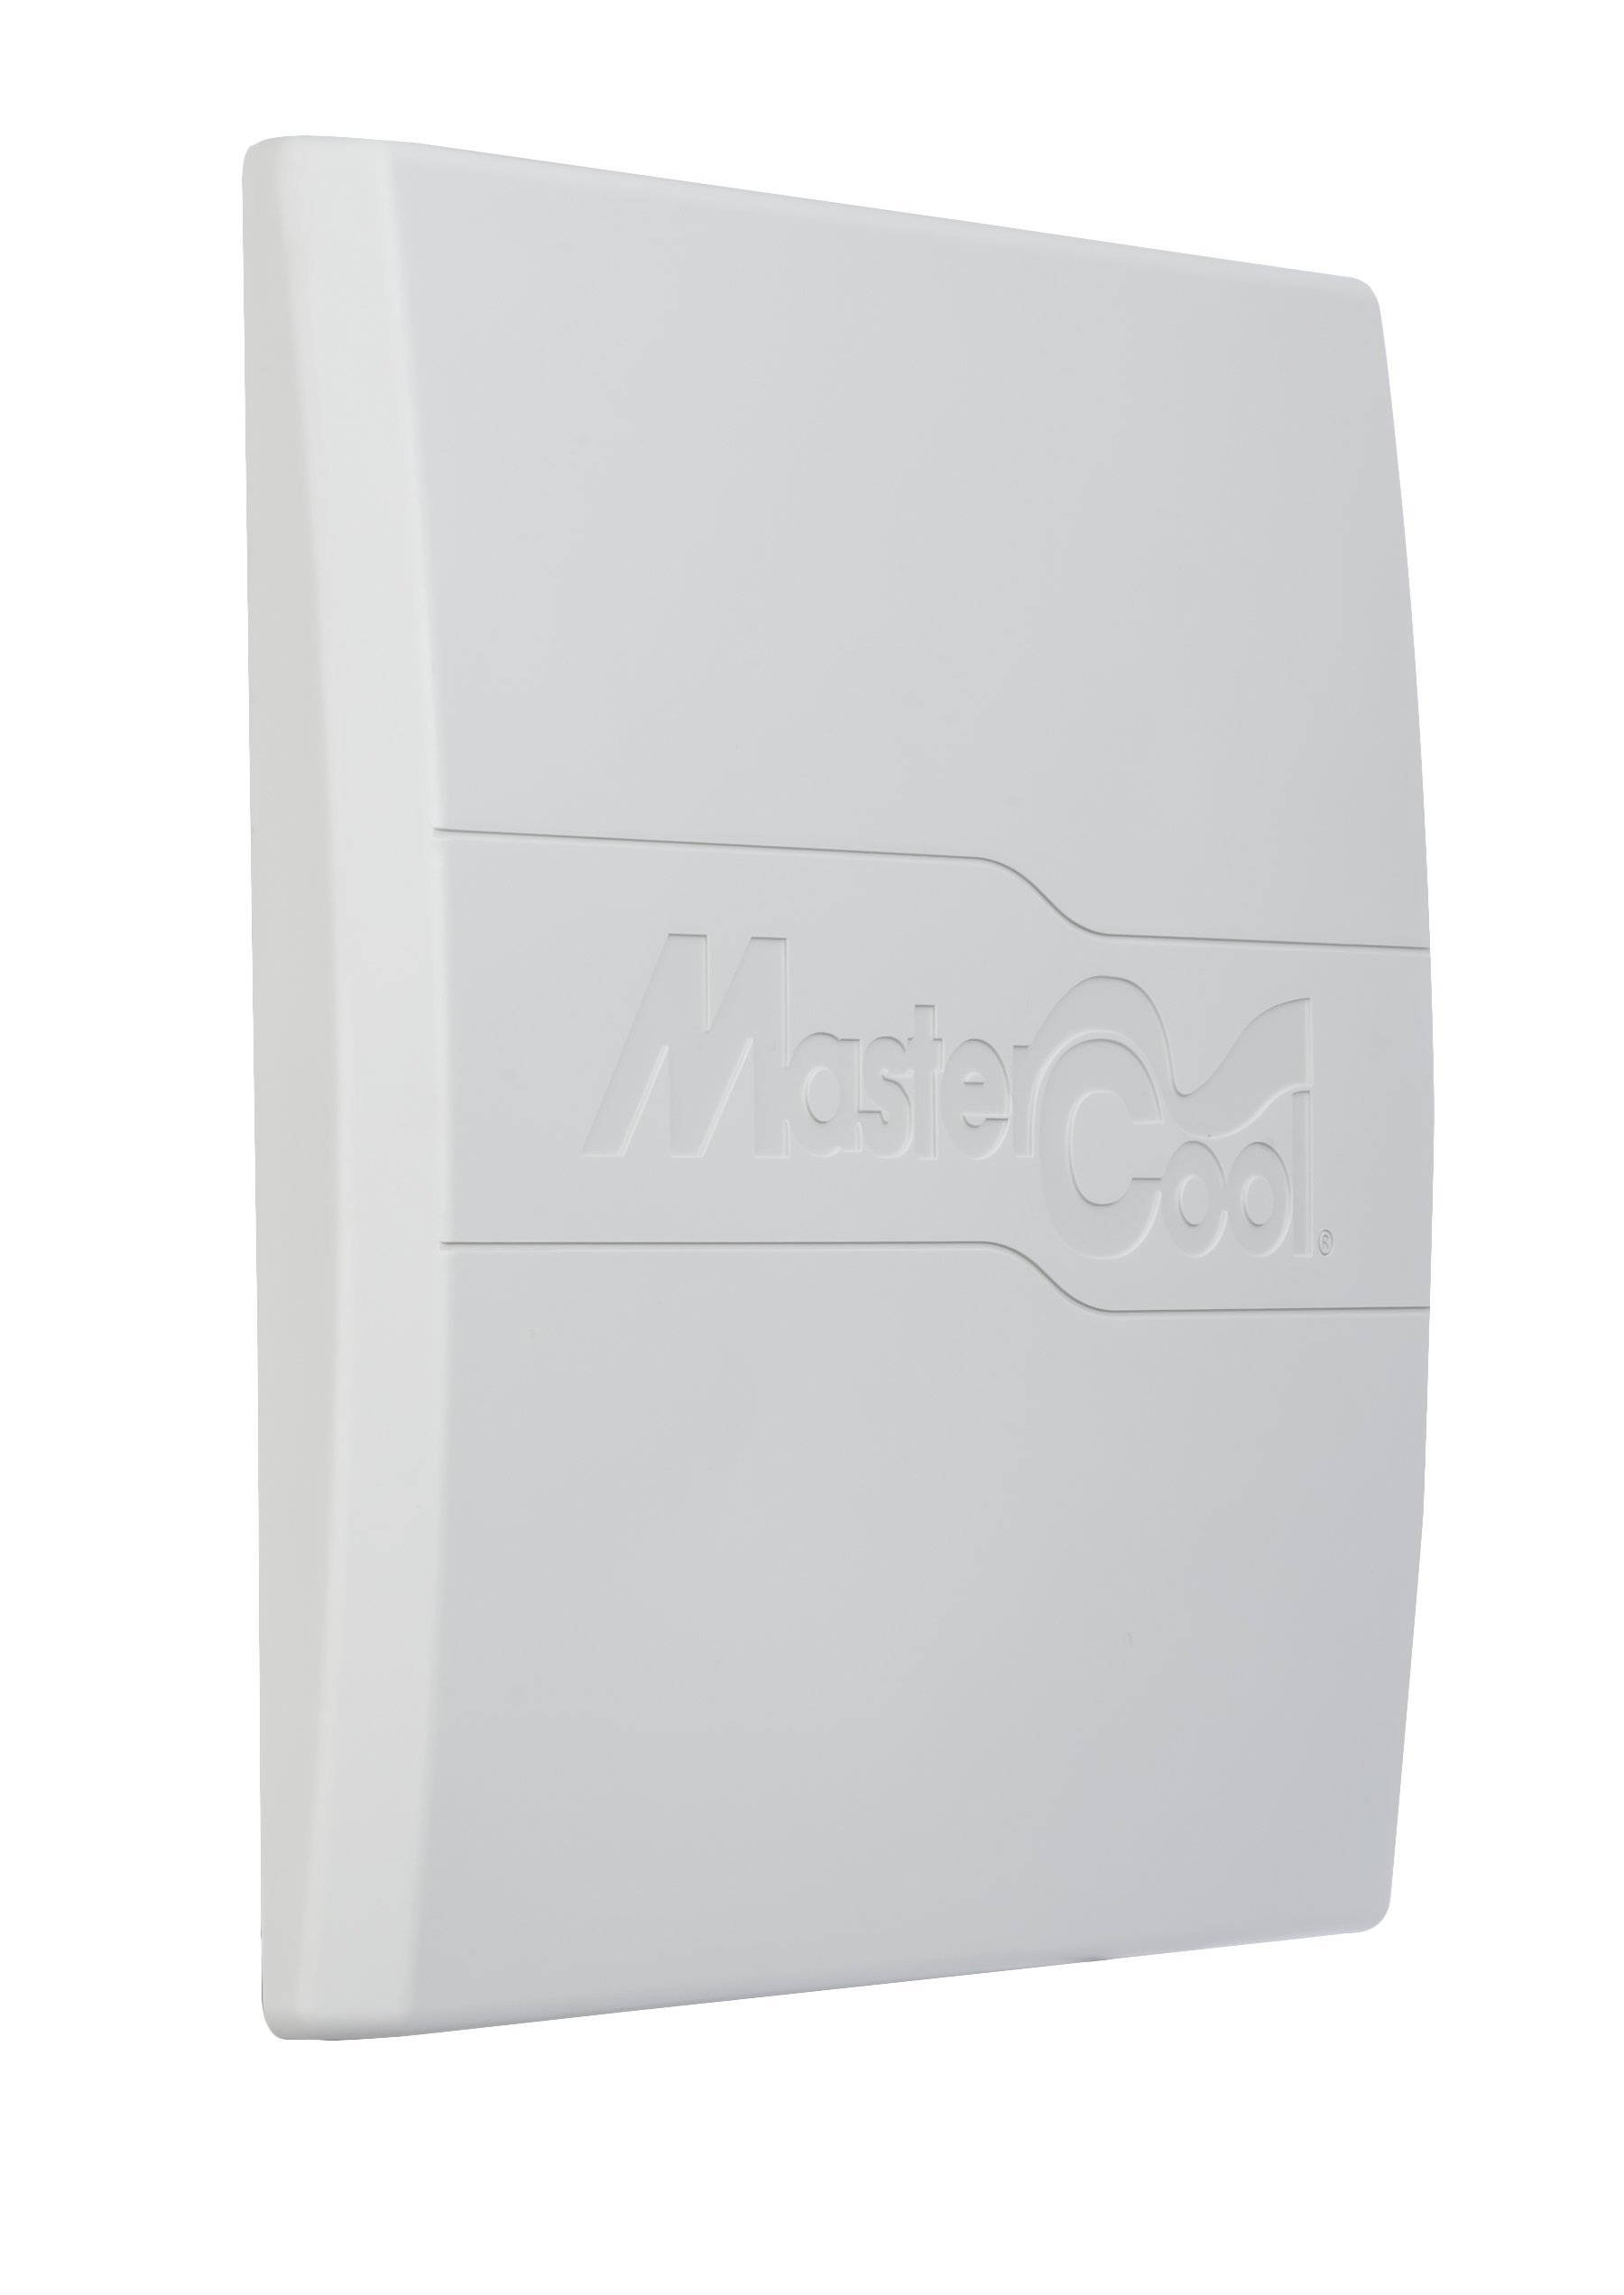 Champion MasterCool Interior Grille Cover by Champion Cooler (Image #2)